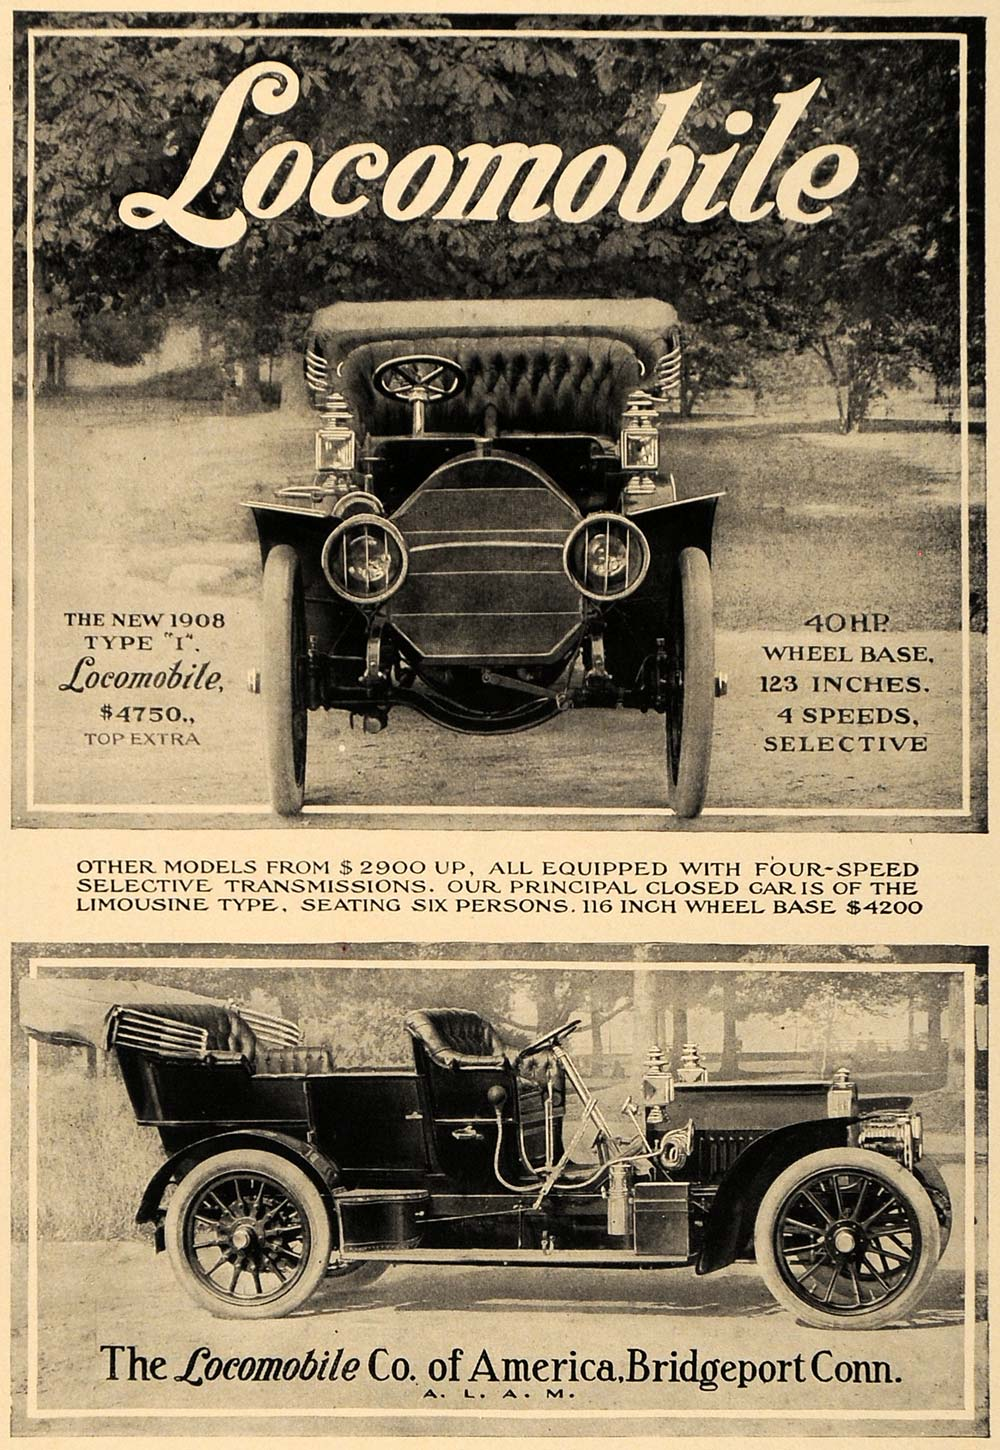 1907 Ad Locomobile 1908 Type I Antique Cars Pricing - ORIGINAL ADVERTISING CL9